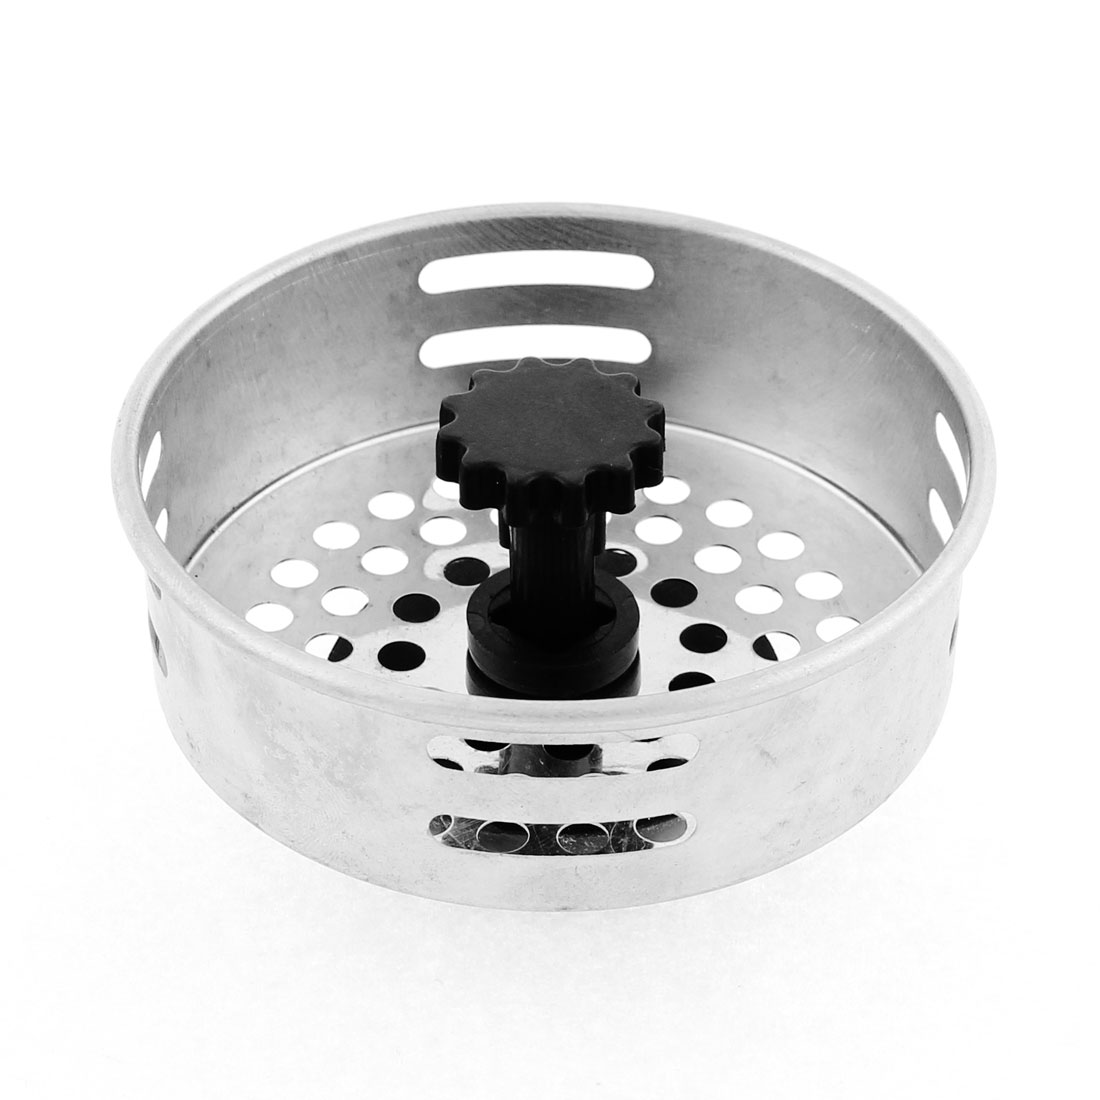 Kitchen Stainless Steel Water Sink Basin Strainer Filter Stopper 80mm Dia